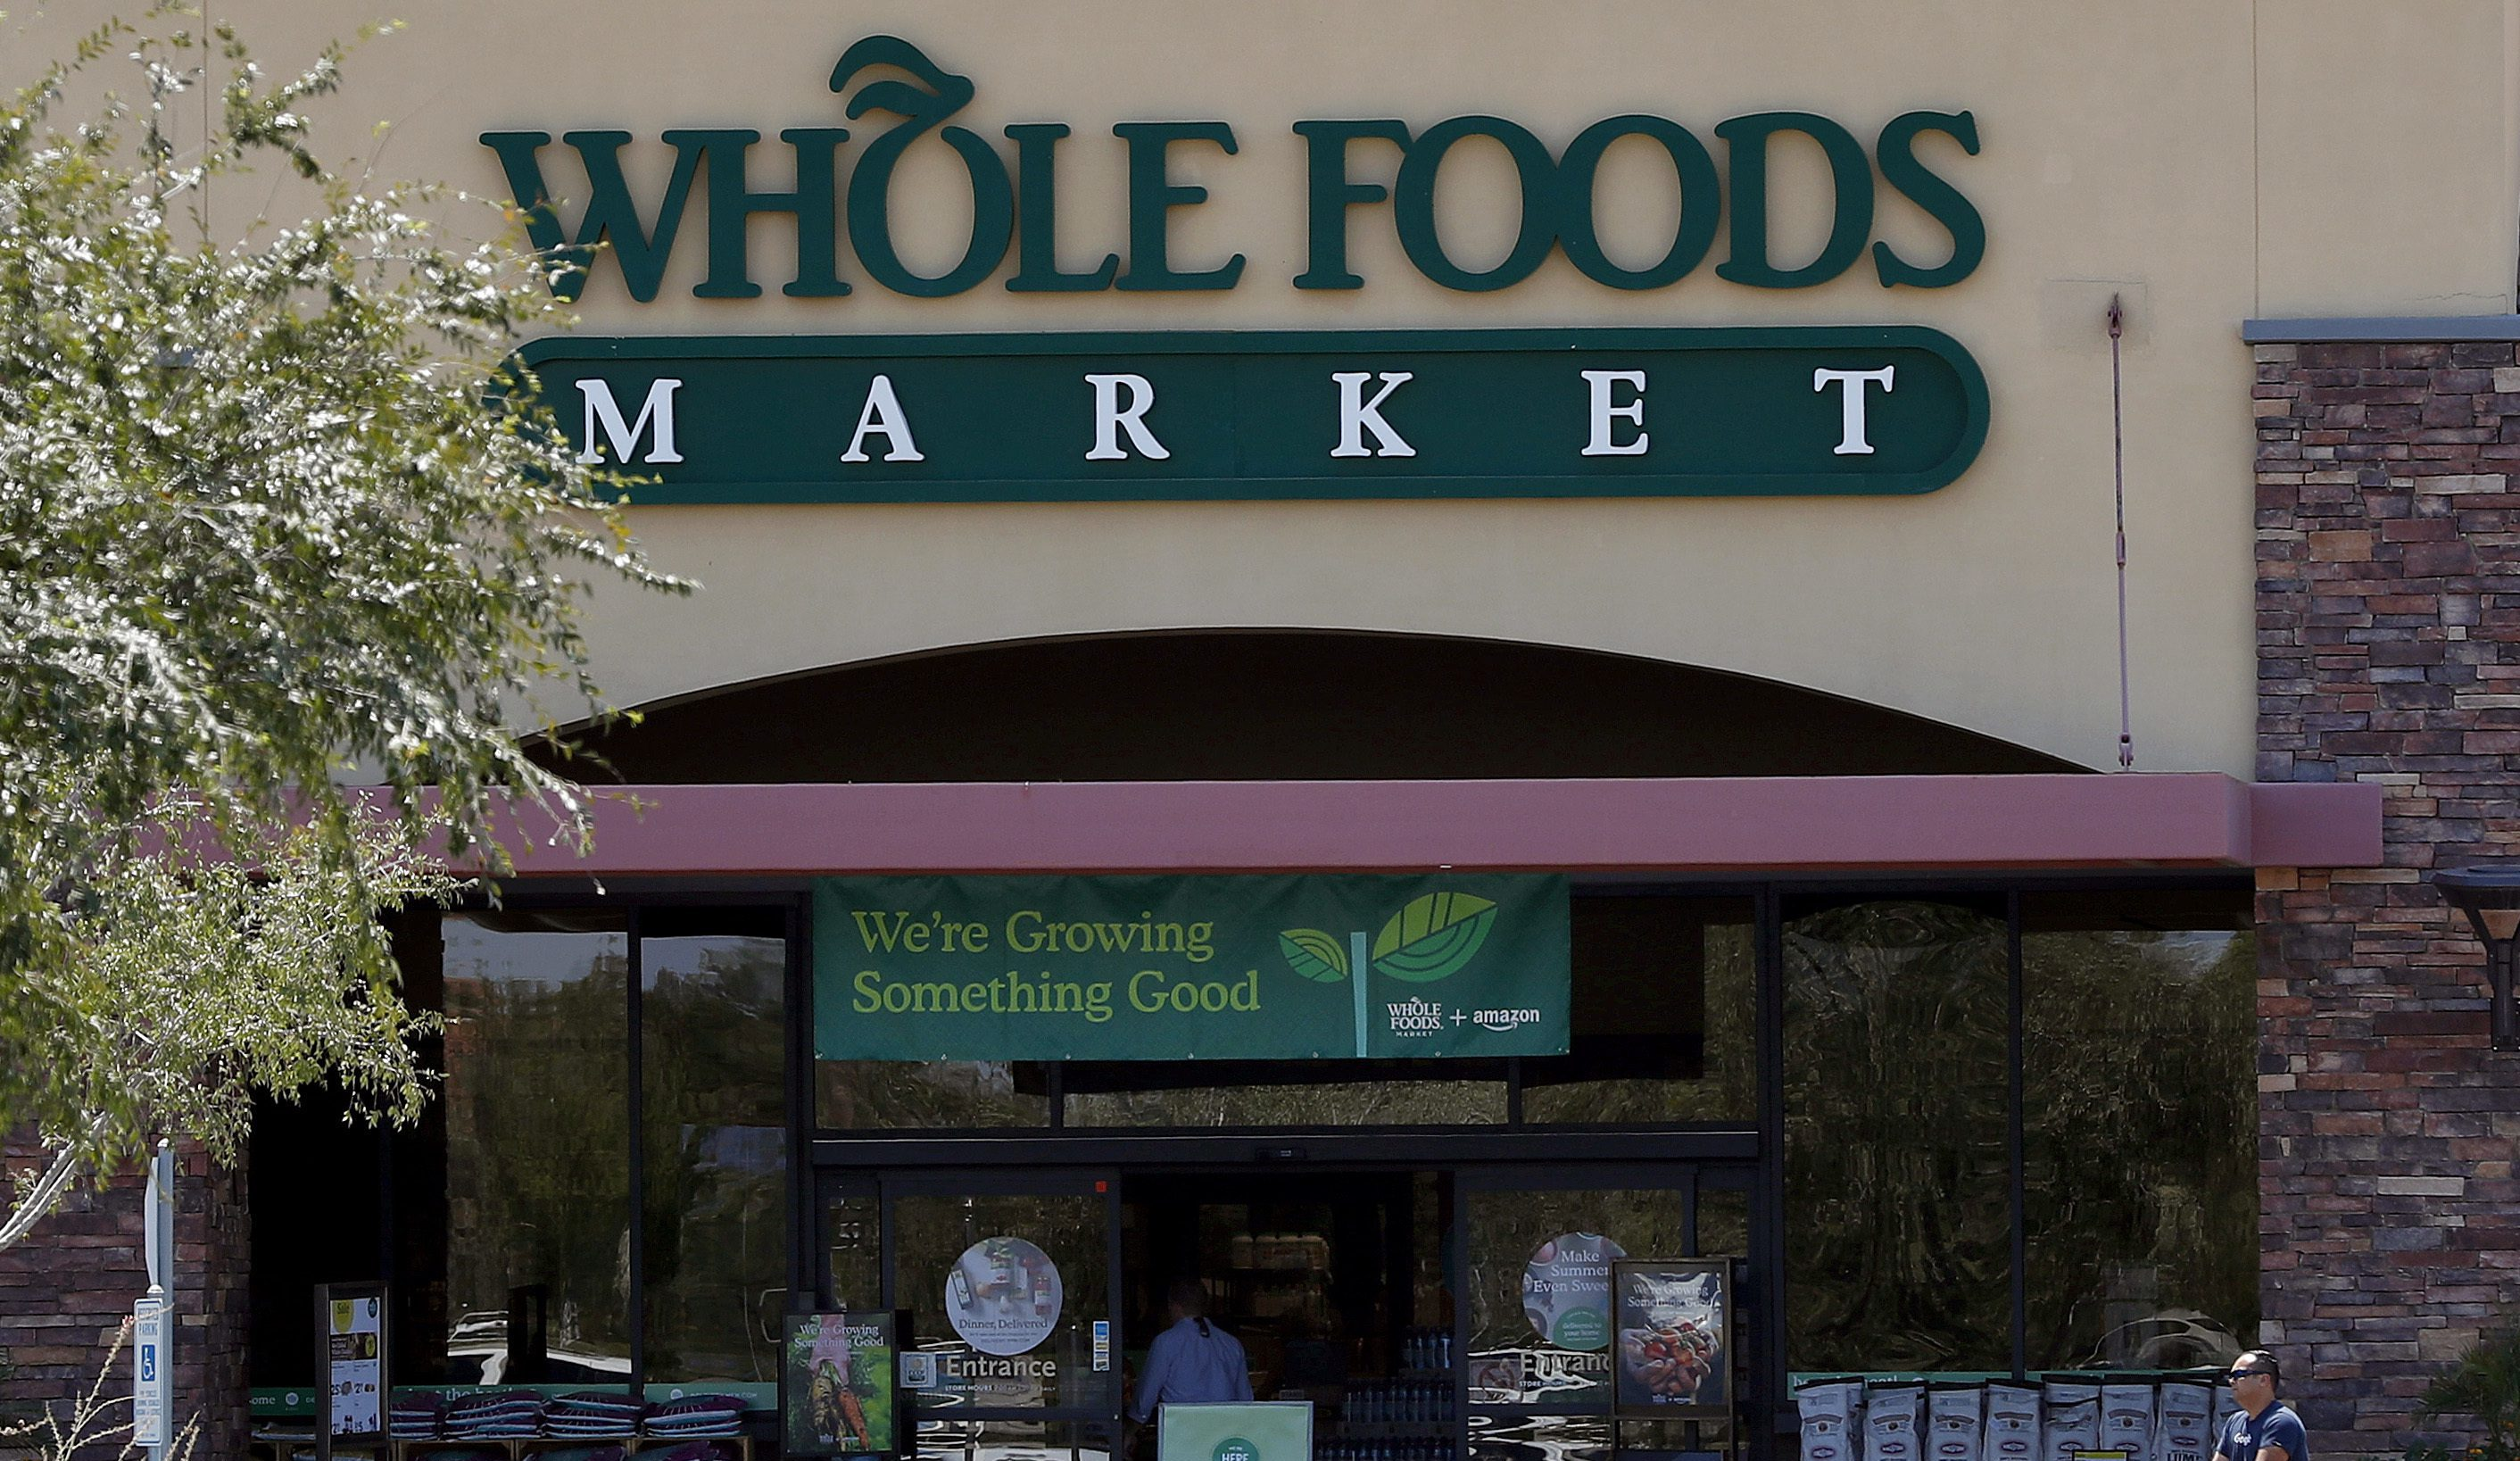 Amazon Whole Foods Amazon Amzn Just Explained How Whole Foods Fits Into Its